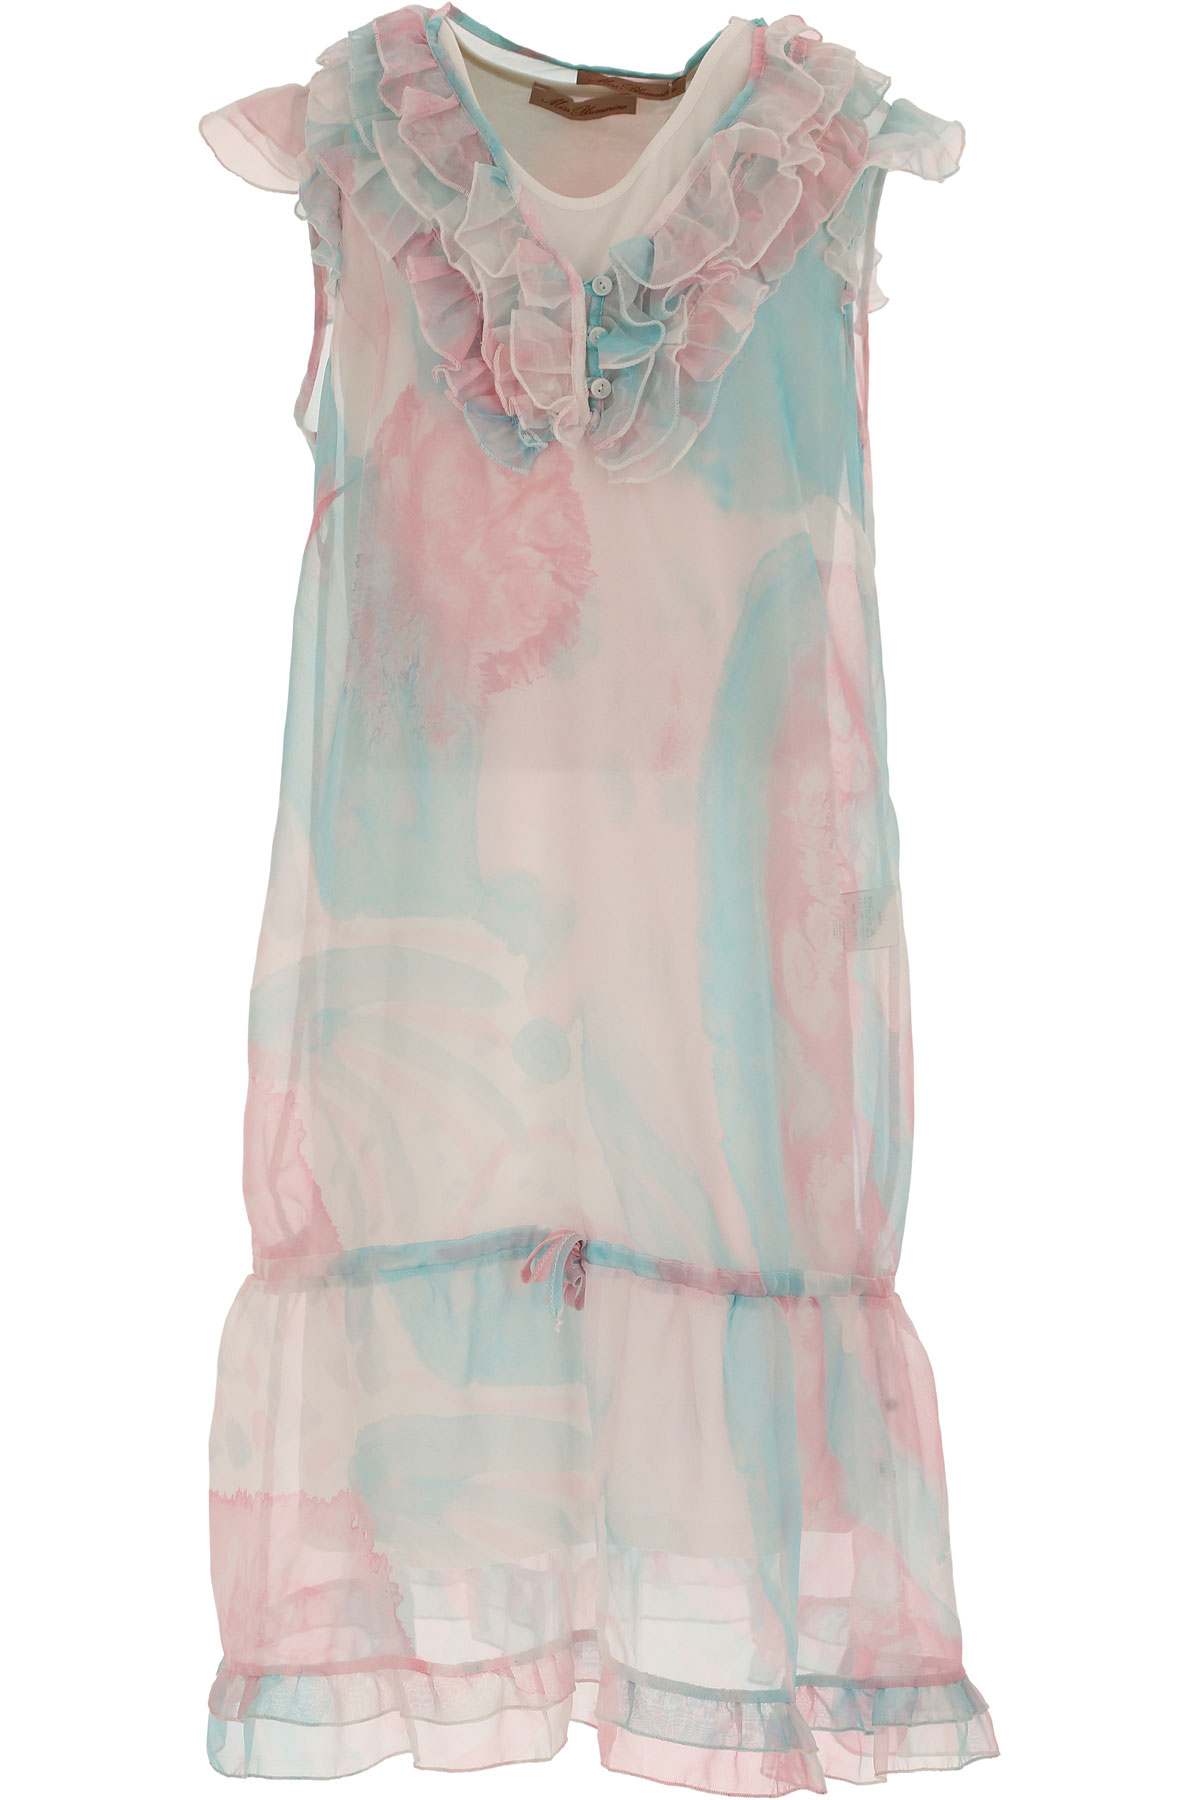 Image of Blumarine Girls Dress On Sale in Outlet, Pink, polyester, 2017, 10Y